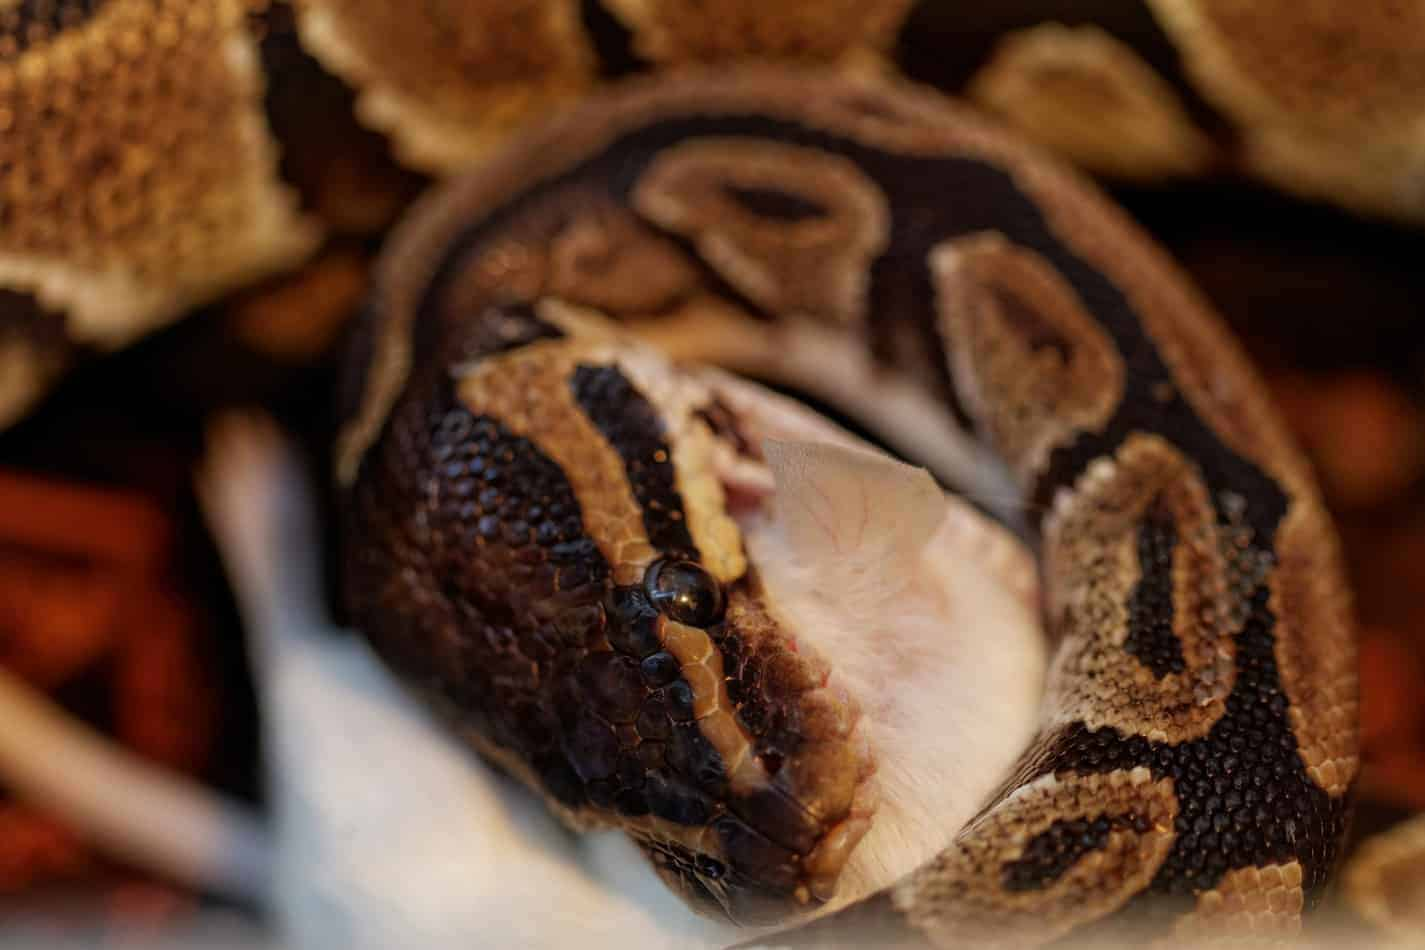 Why Feed Pet Snakes Dead Mice?